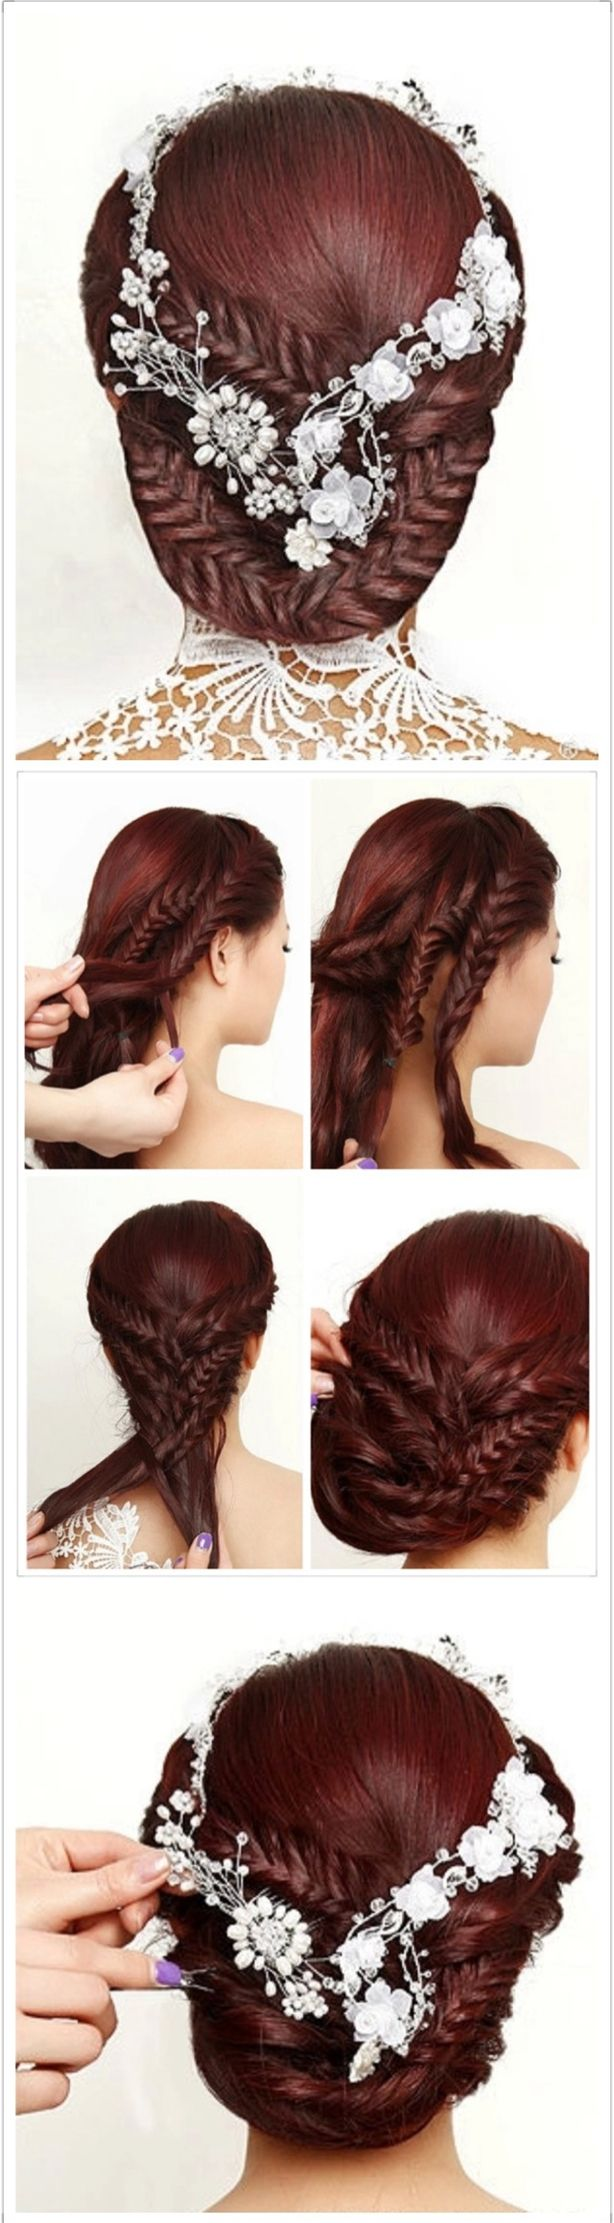 I like this even without the flowers.  Hair styles for long hair hairstyles. Re-pin if you like. Via Inweddingdress.com #hairstyles